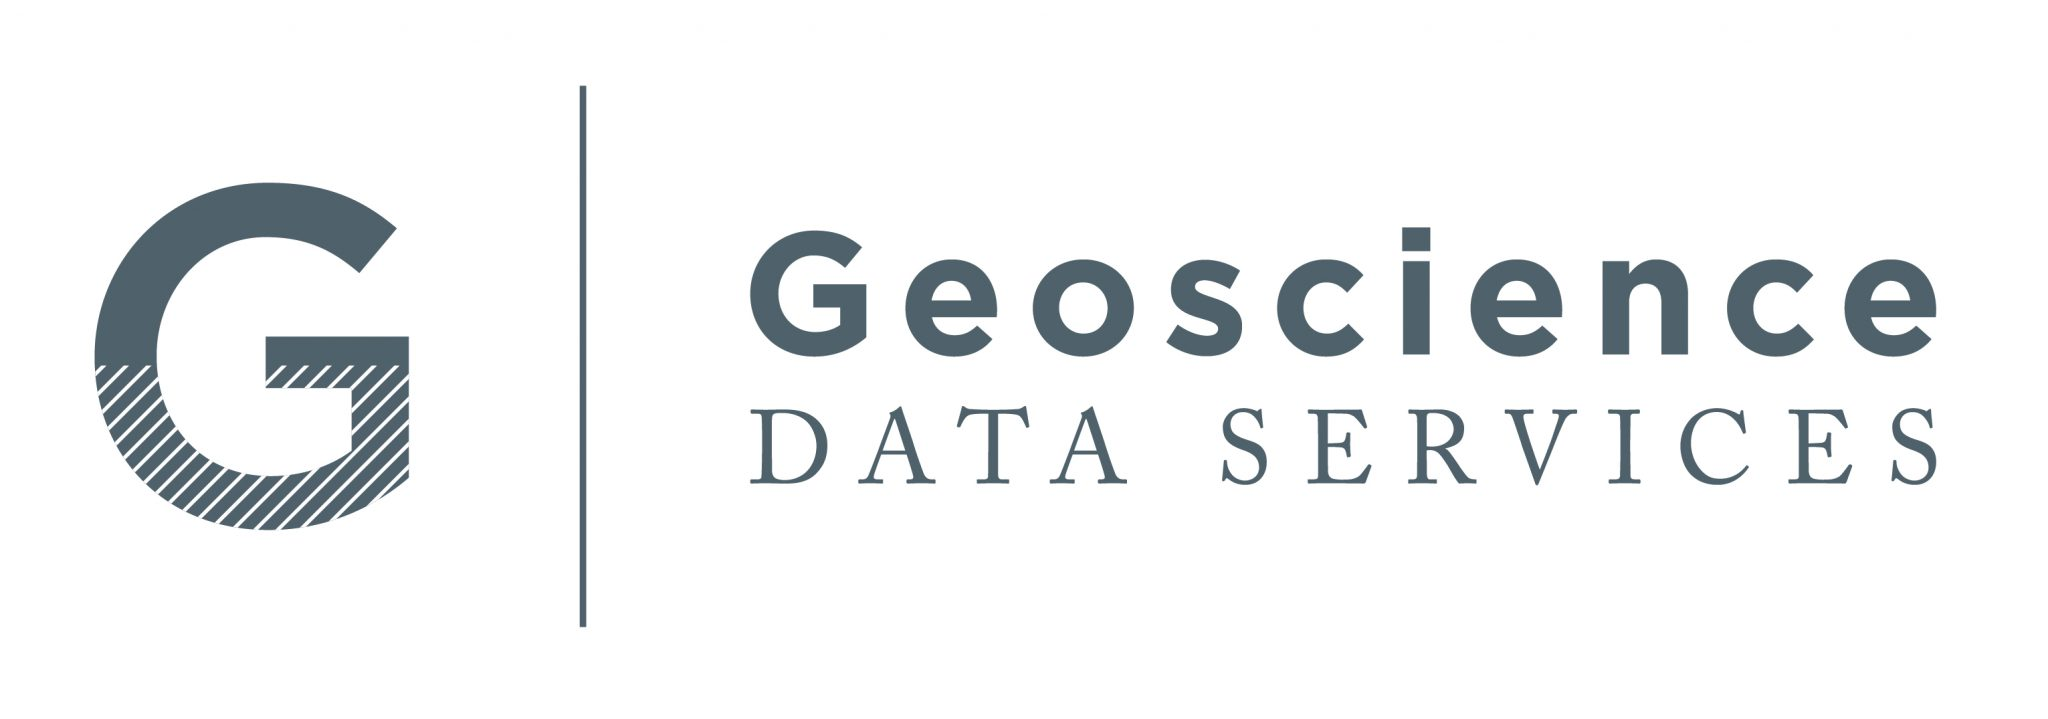 Geoscience Data Services logo